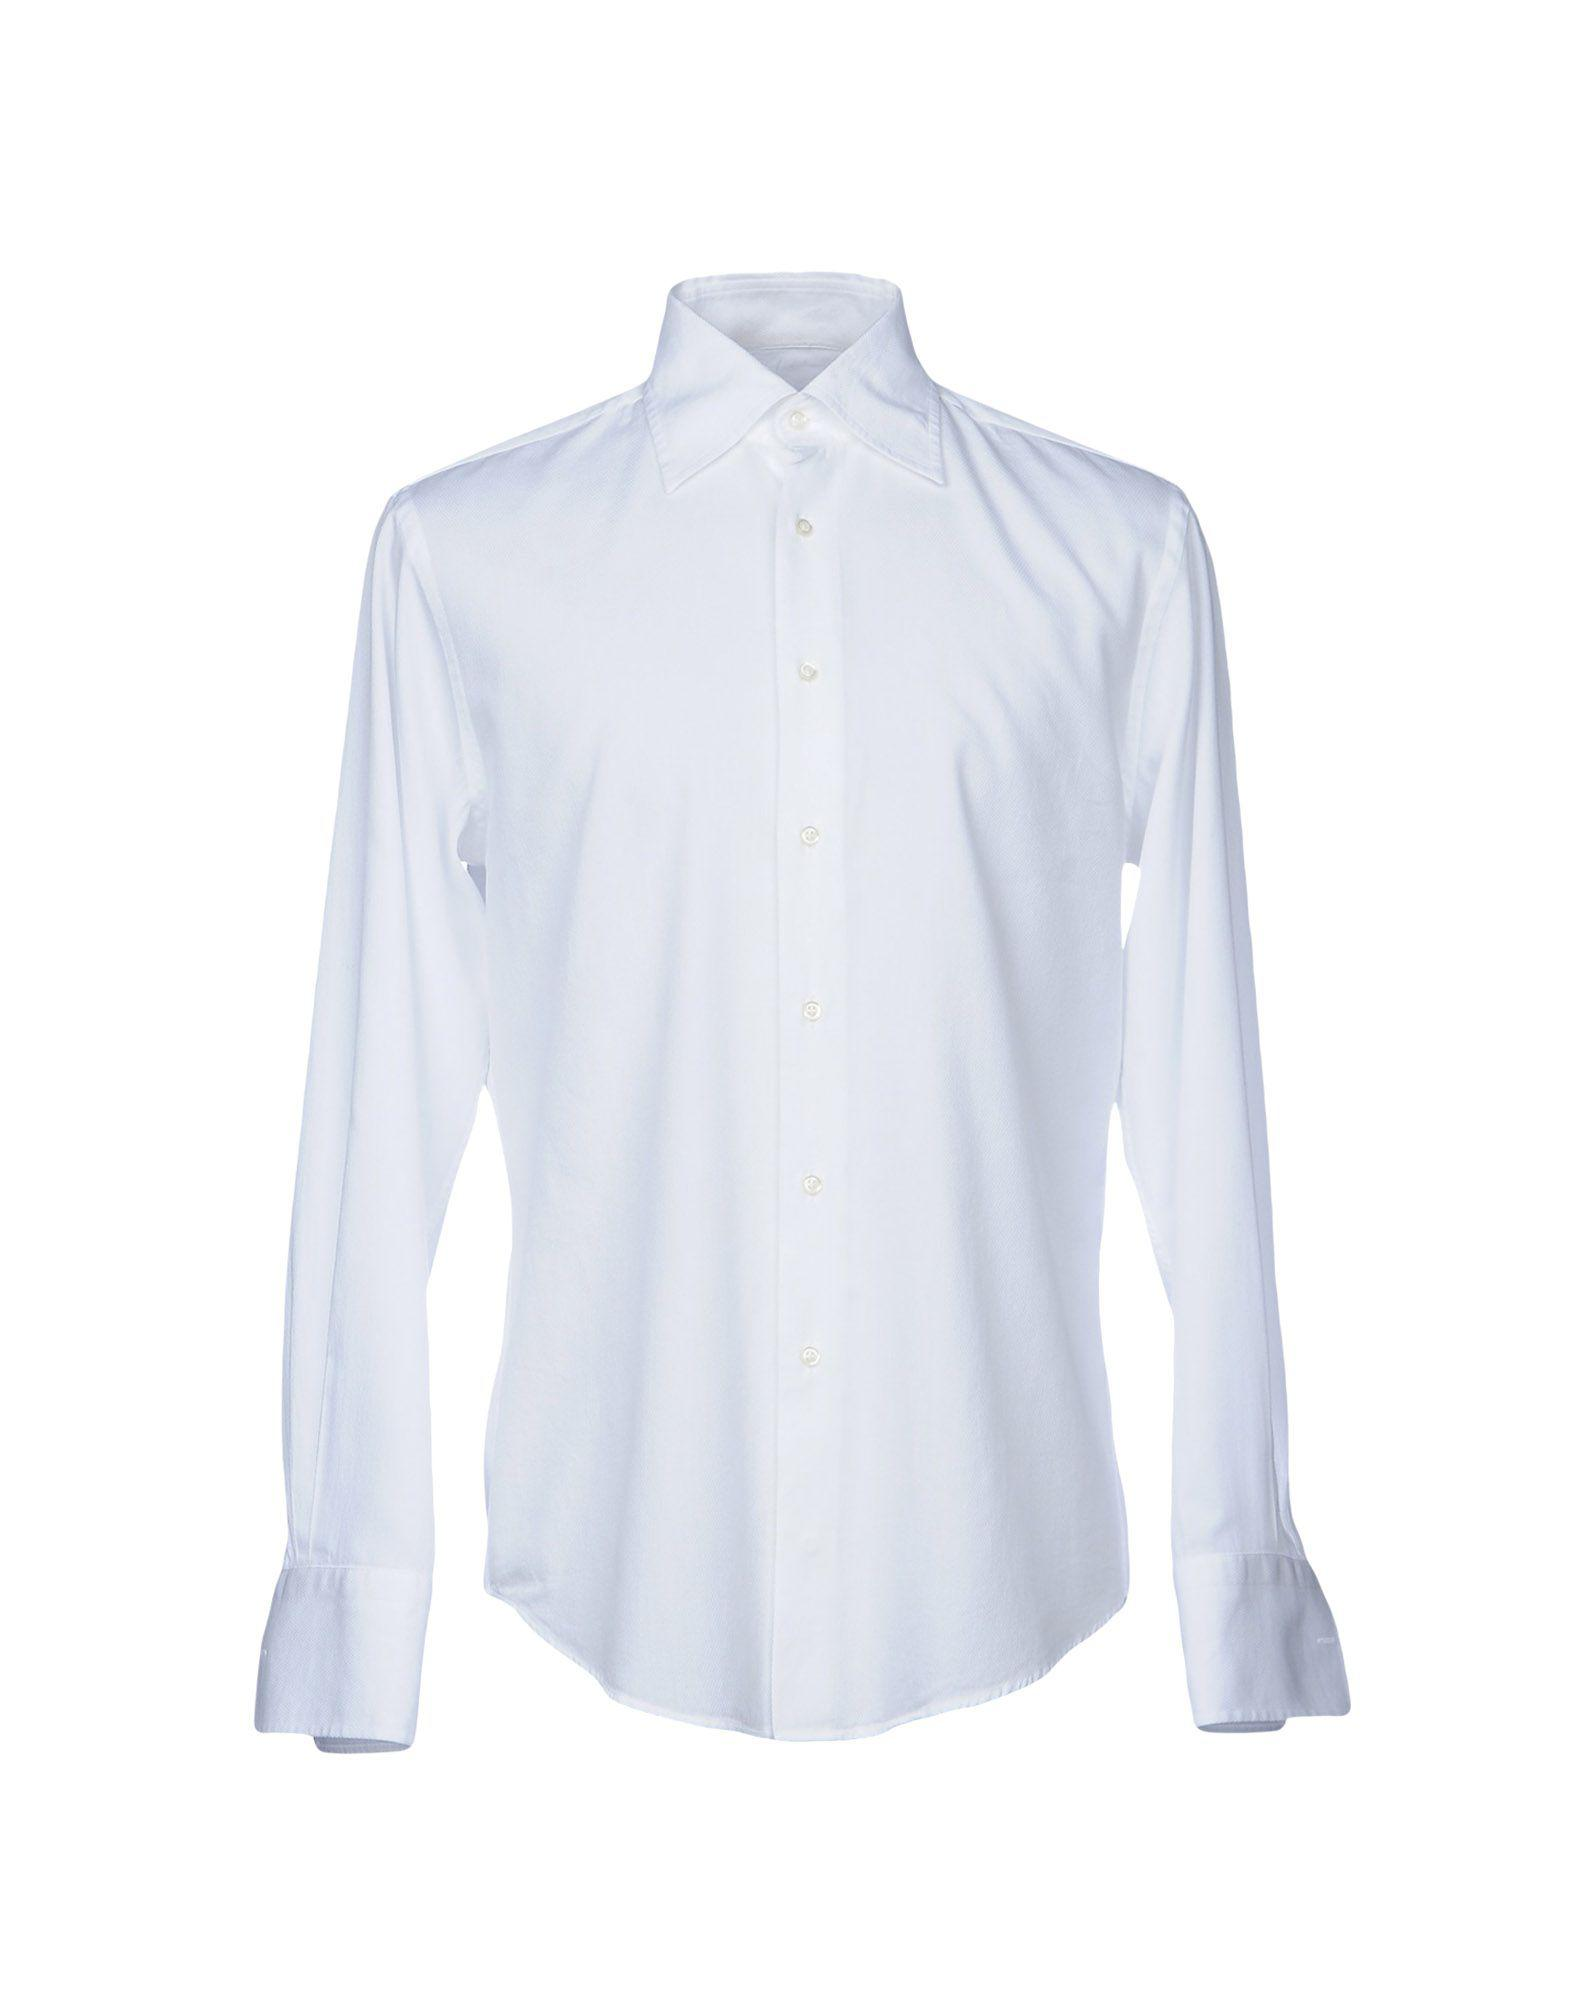 SHIRTS - Shirts Gai Mattiolo Outlet Professional Discount Popular Top Quality Sale Online Ljd5sq96